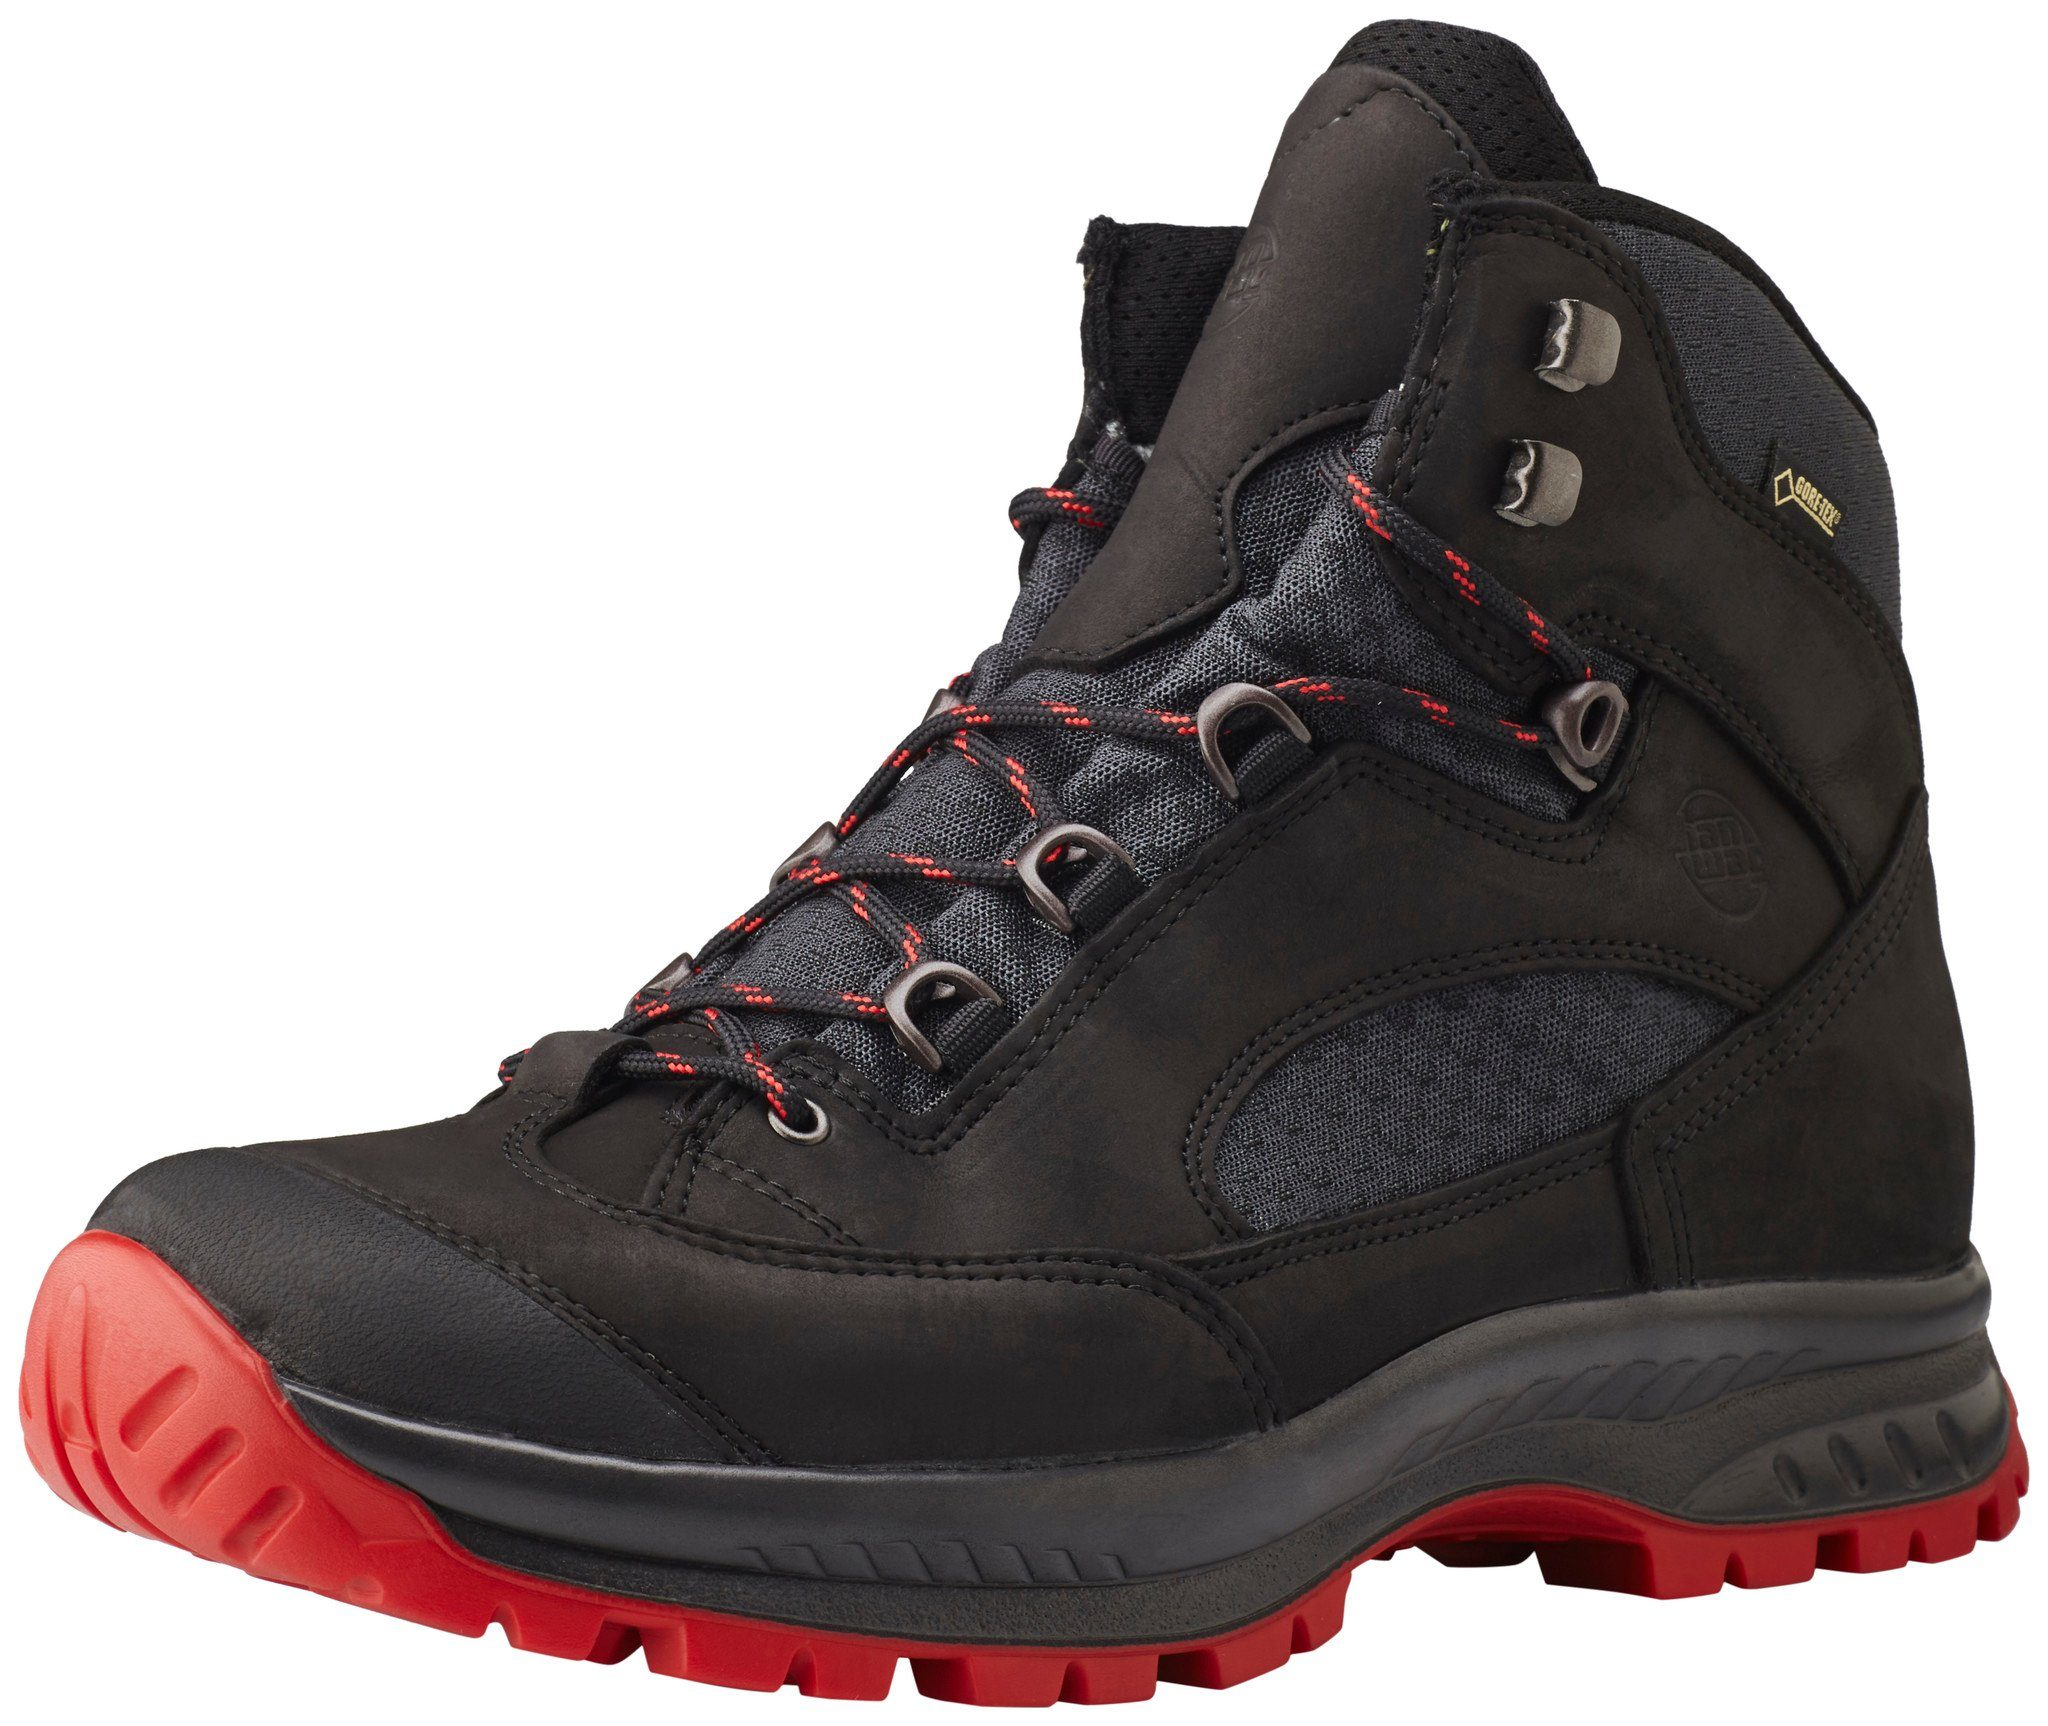 Hanwag Kletterschuh »Banks II GTX Trekking Shoes Men«